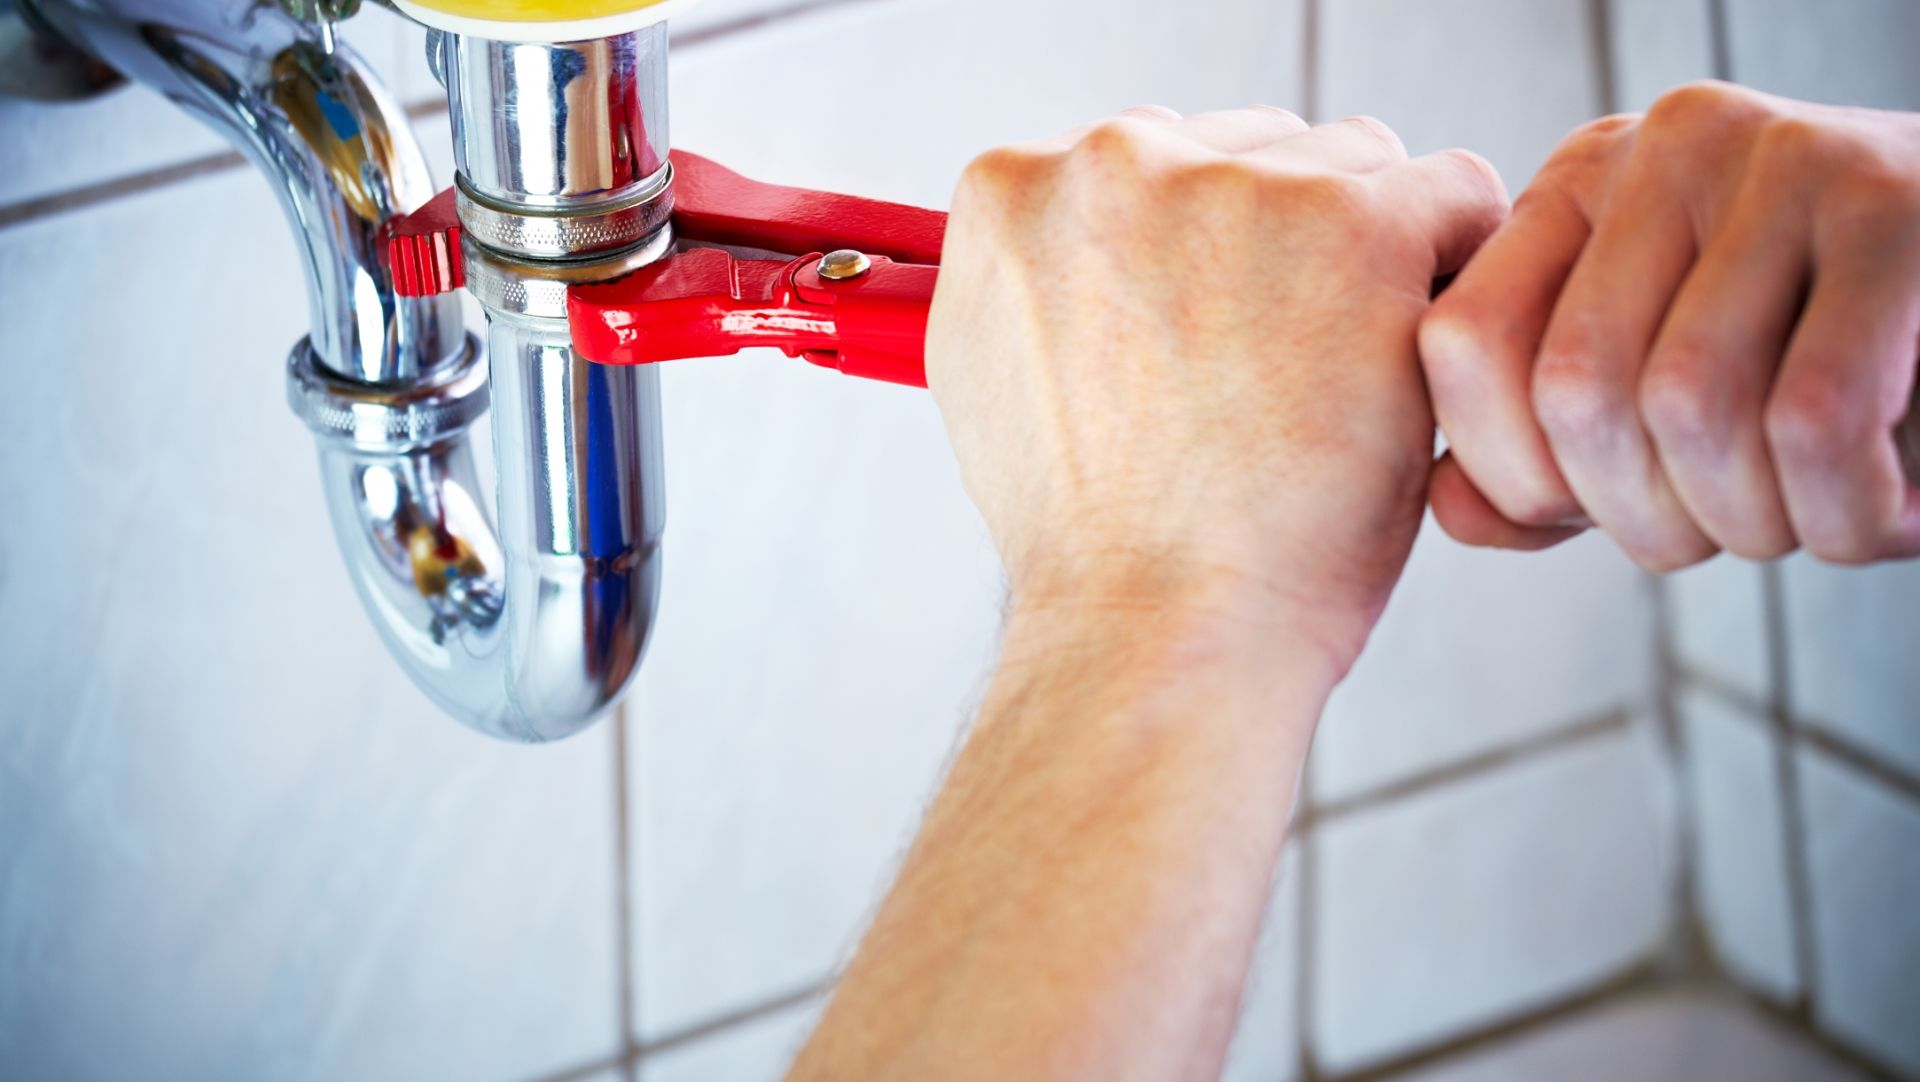 Why Quality Plumbing Service is Important